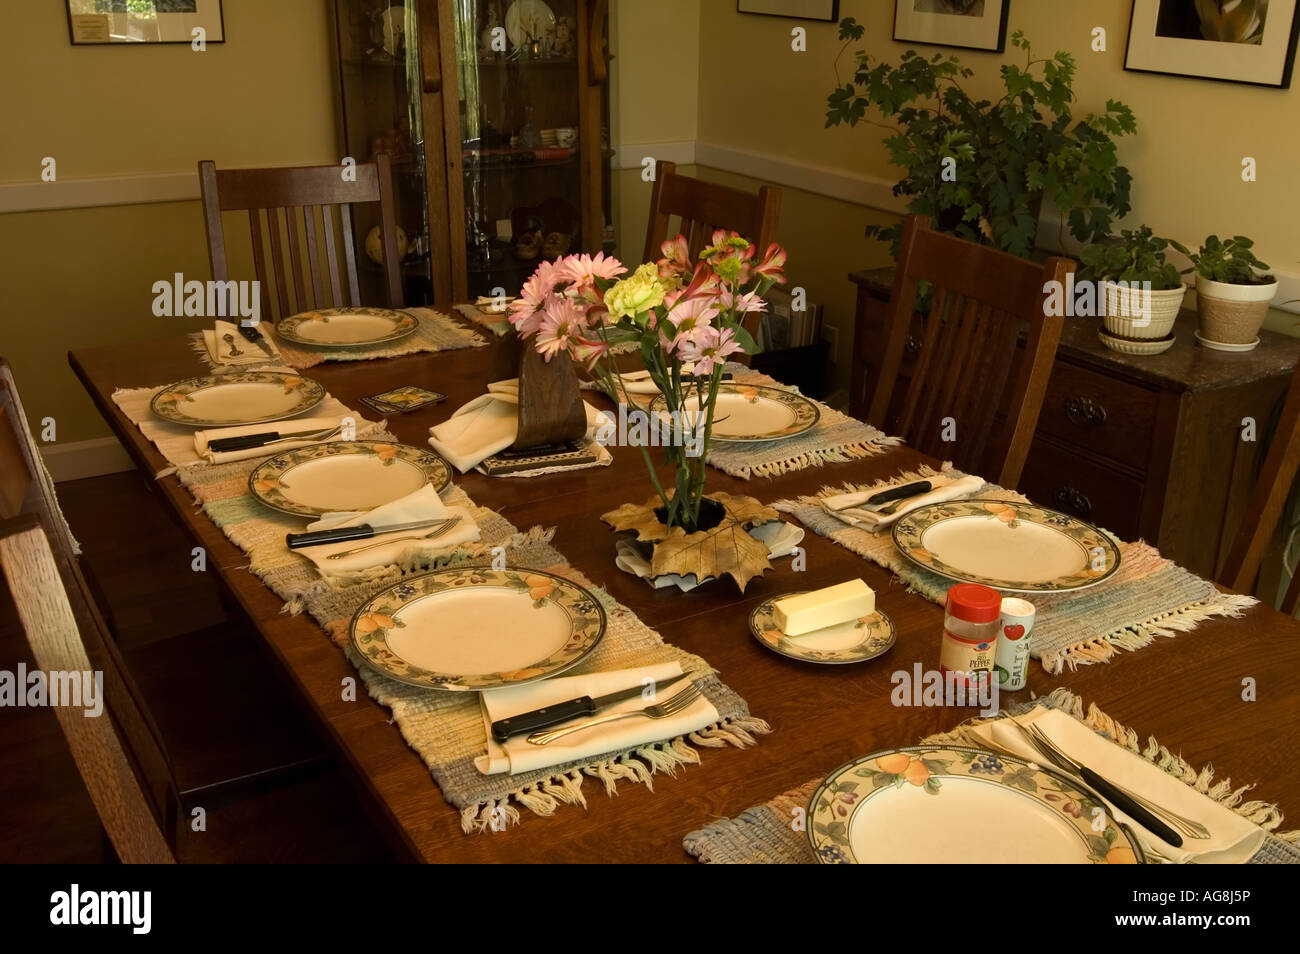 Marvelous Dining Room Table Set Up For Meal